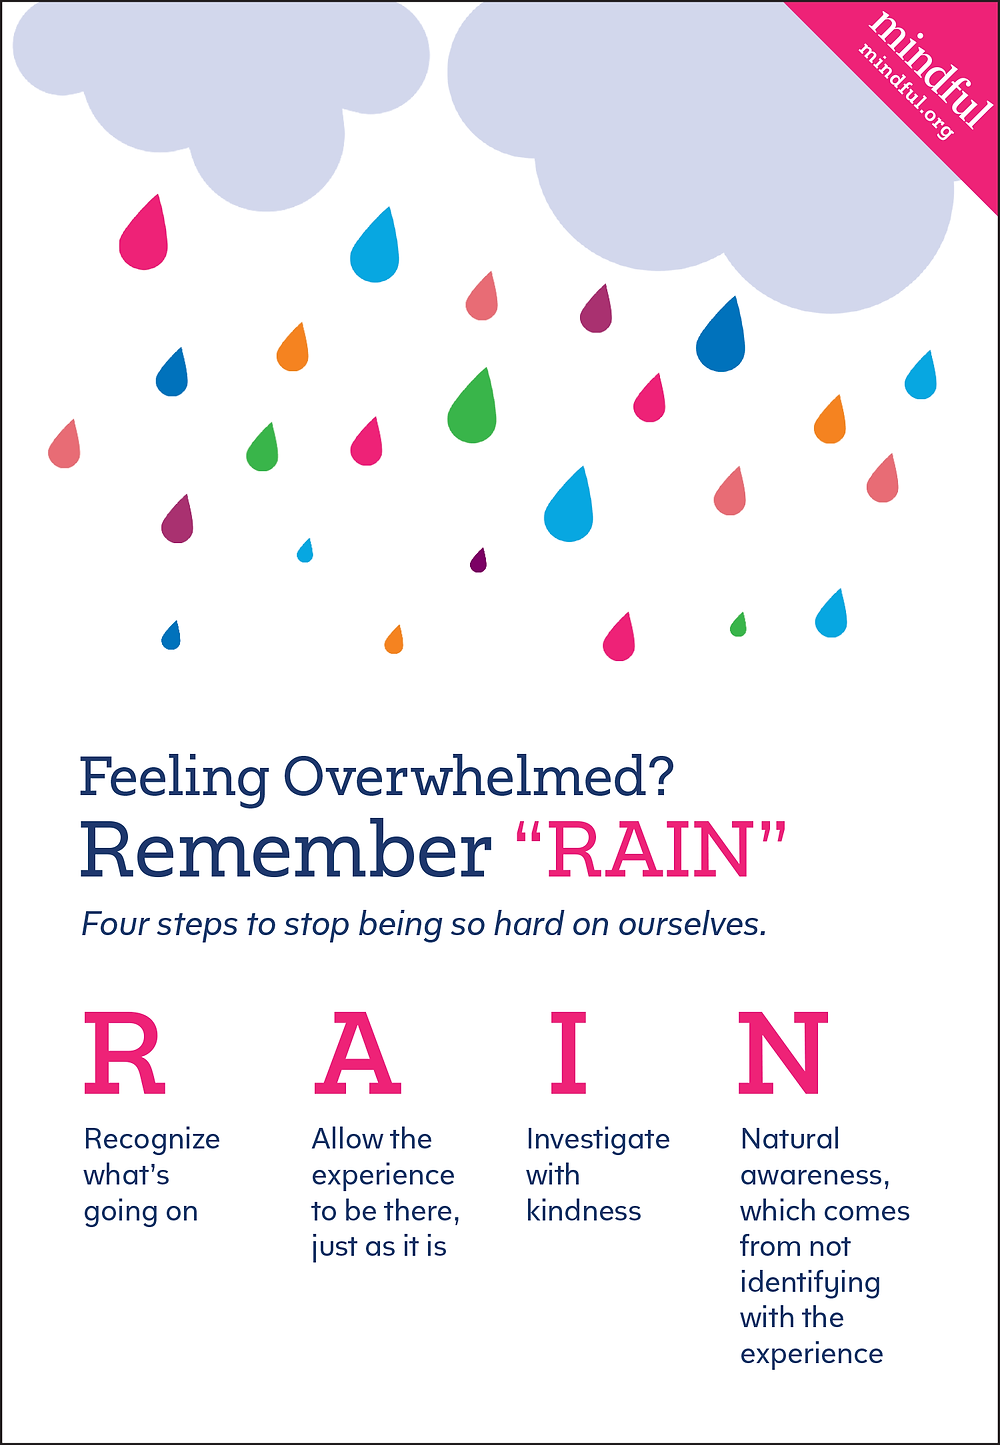 The 4 steps to the RAIN R.A.I.N. method for anxiety or feeling overwhelmed.